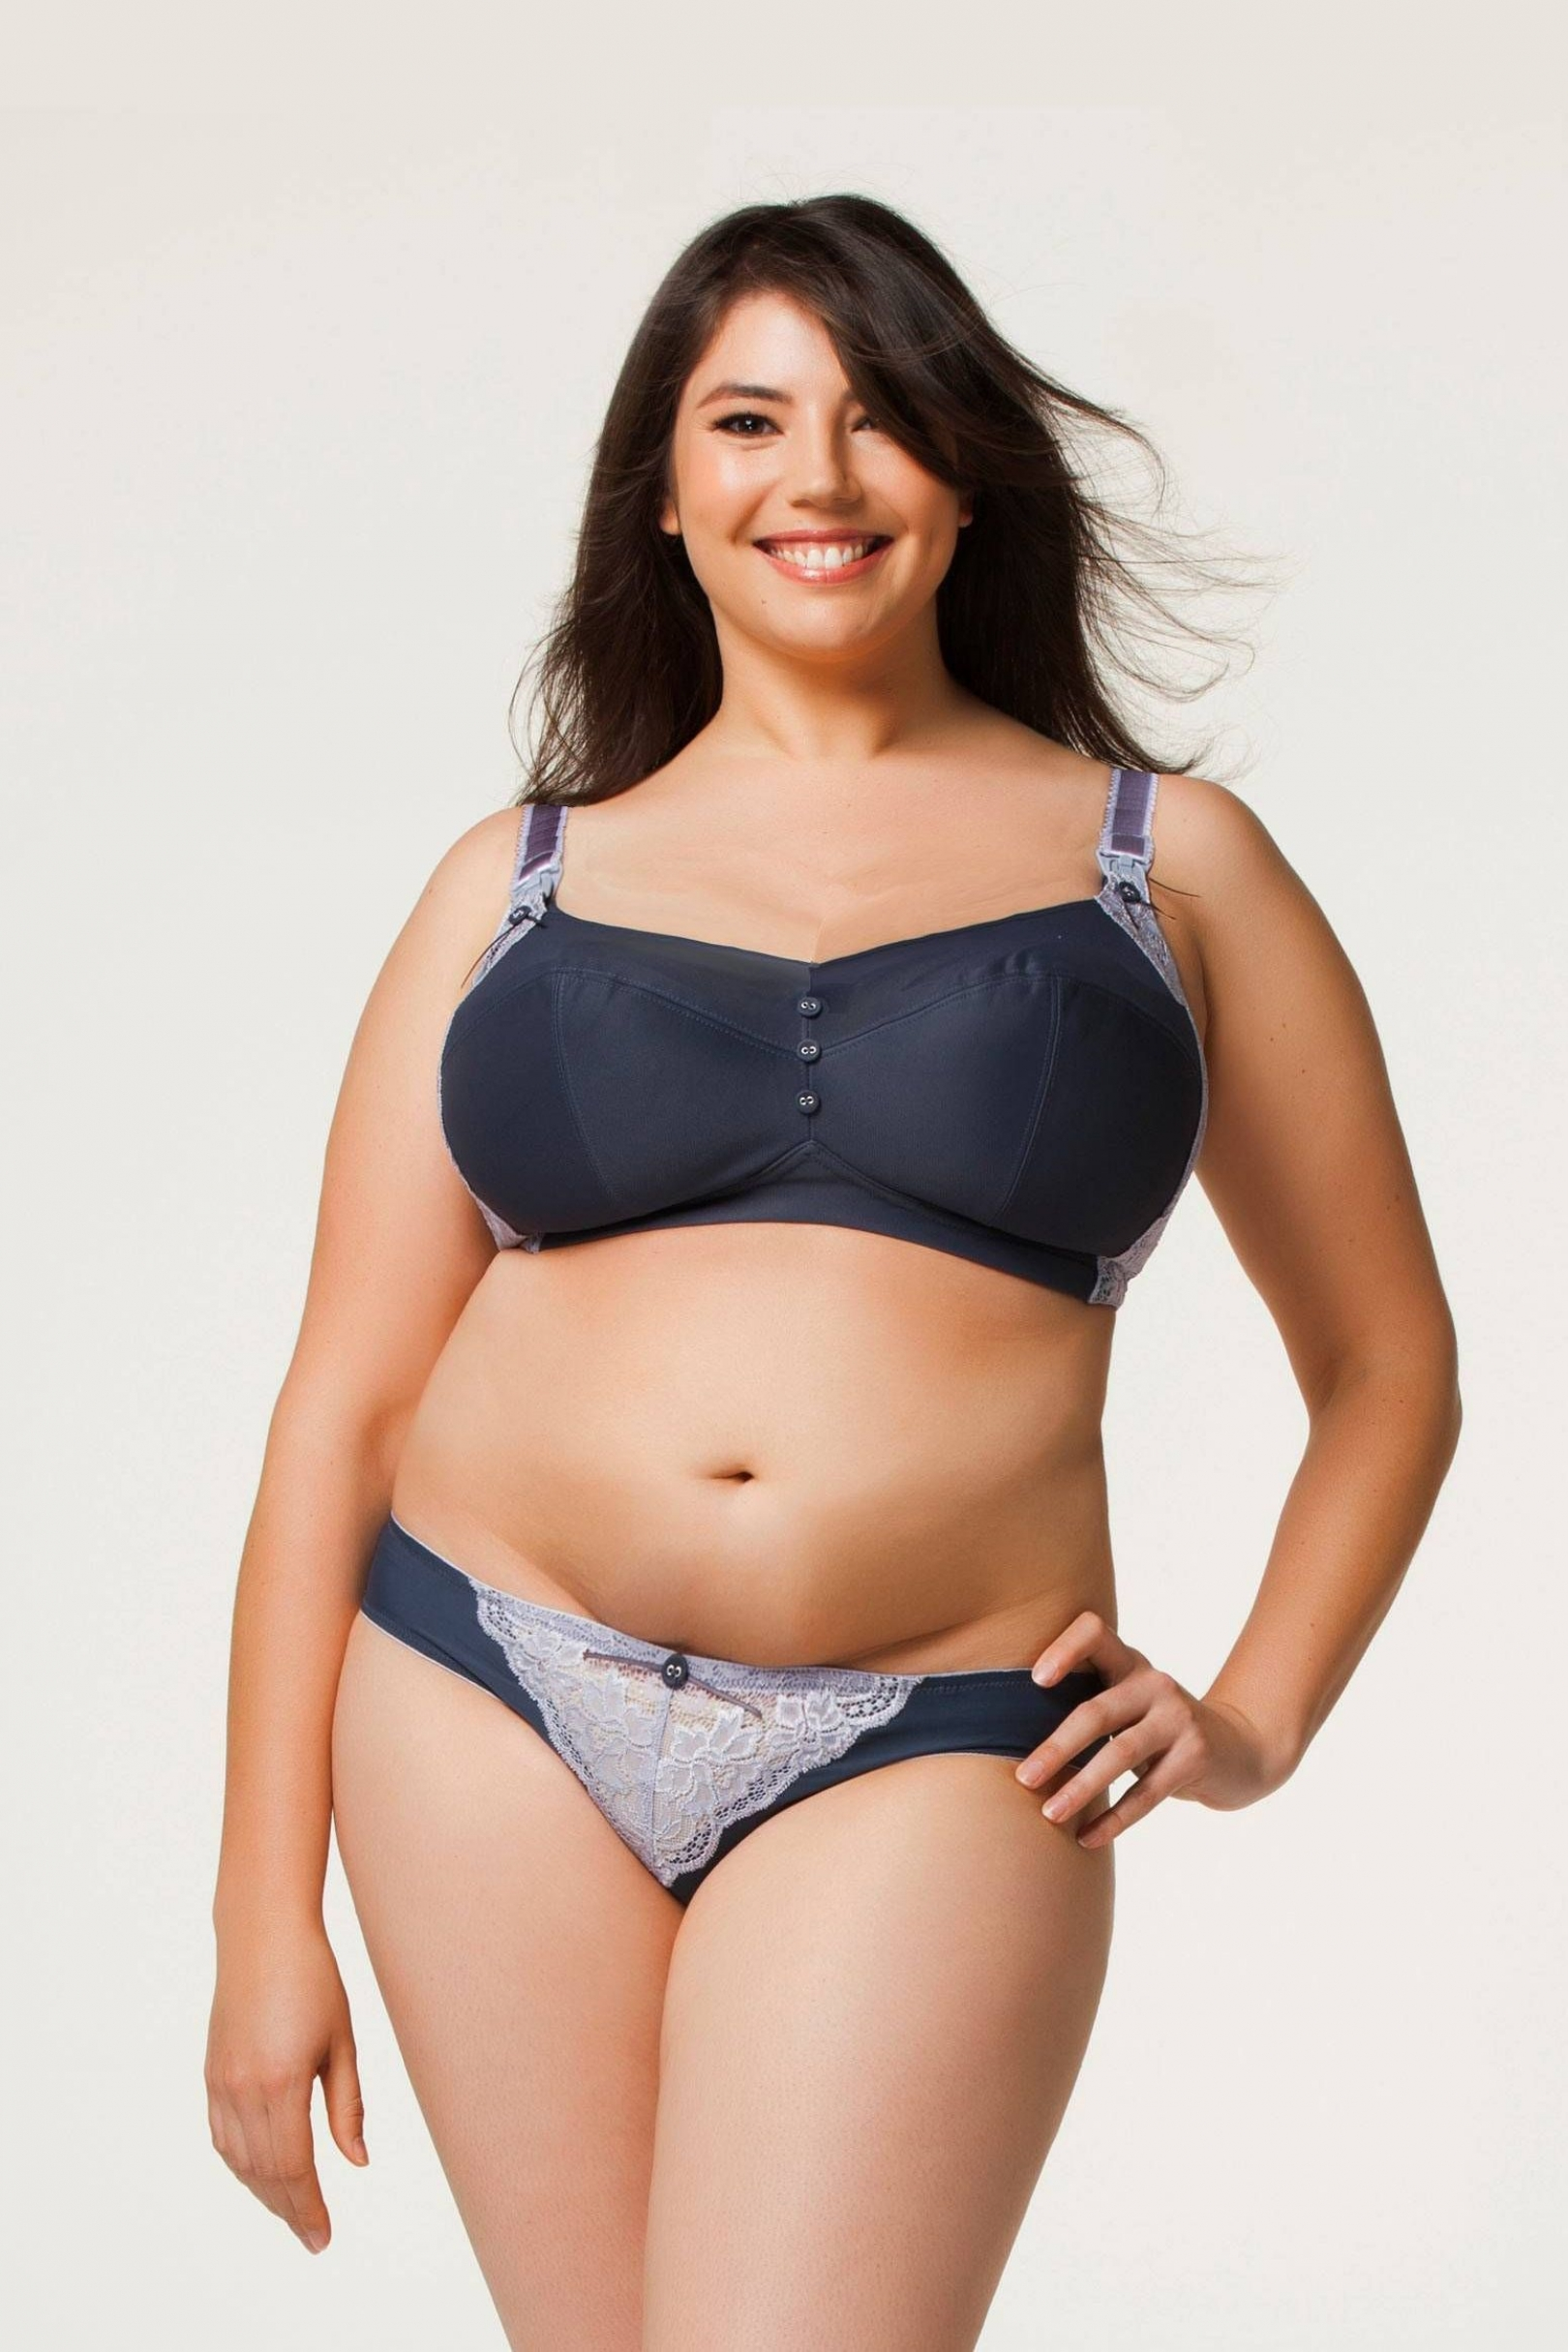 Plus Size Nursing Bras Plus Size Nursing Bras Plus Size Nursing Bras Cake Lingerie recognised a gap in the market for a good plus size maternity and nursing bras.